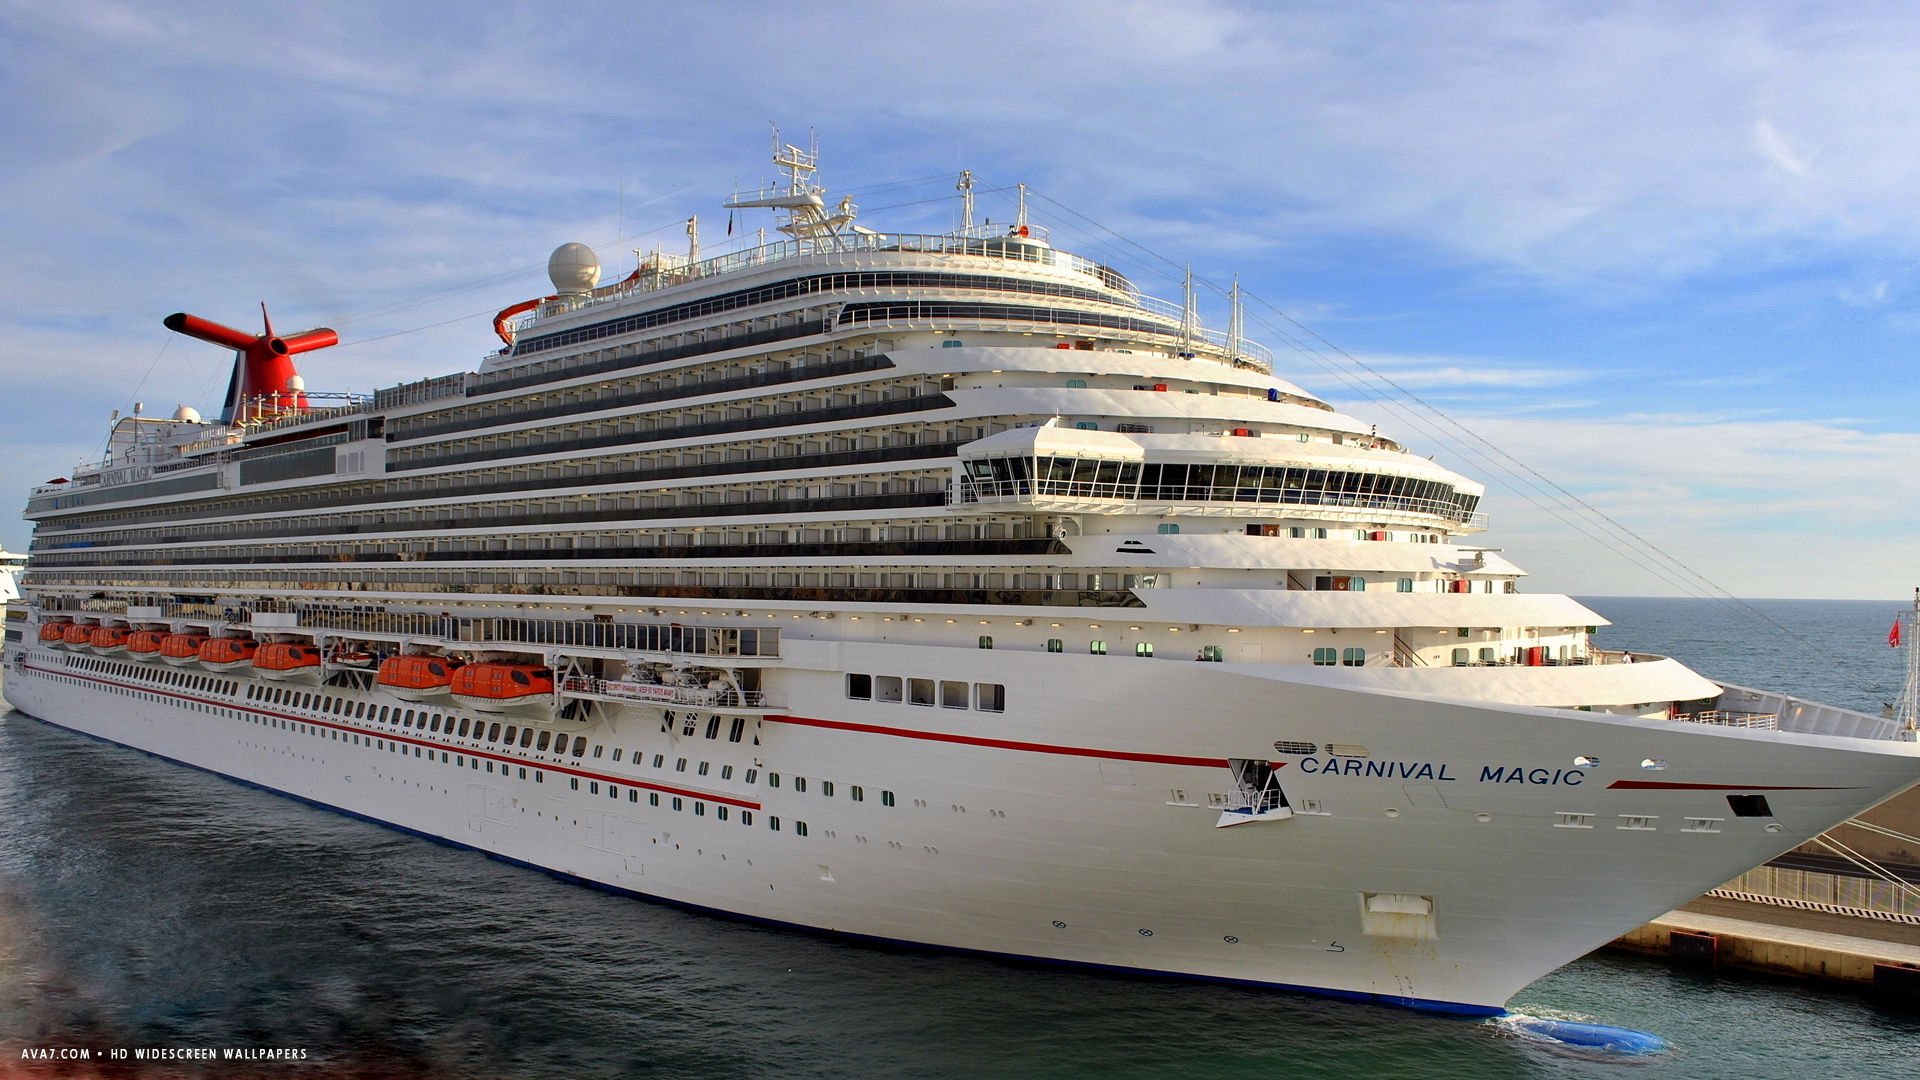 carnival magic cruise ship hd widescreen wallpaper cruise ships 1920x1080